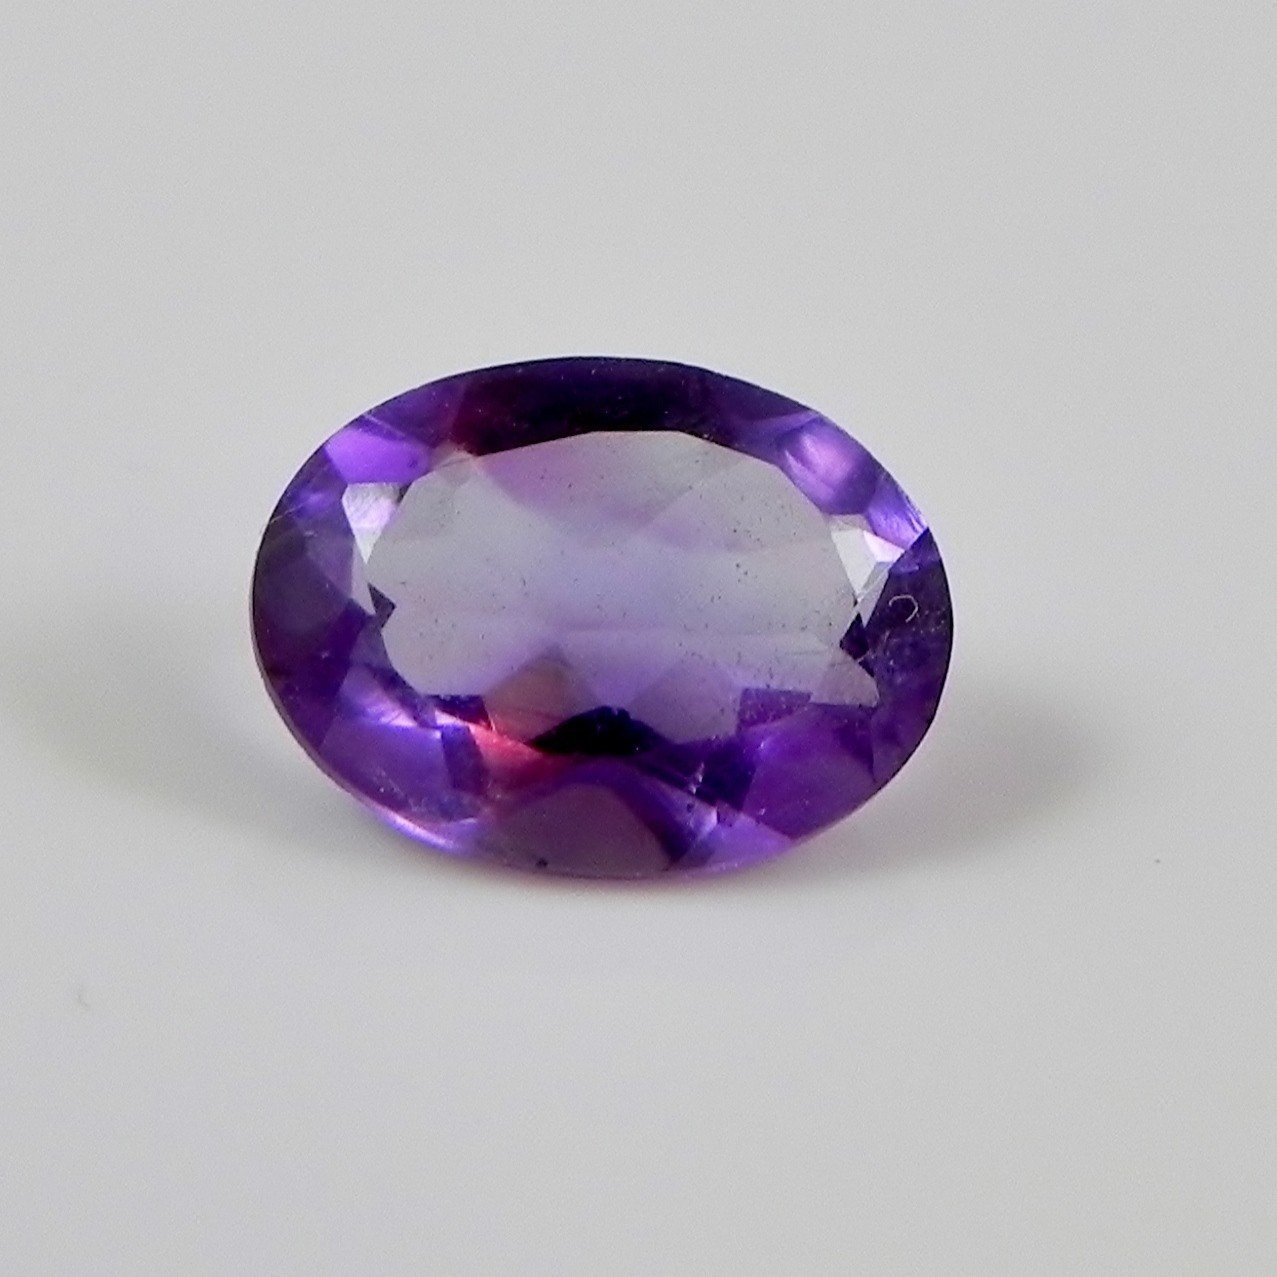 Certified Natural Amethyst AAA Quality 7x5 mm Faceted Oval 5 pcs lot loose gemstone